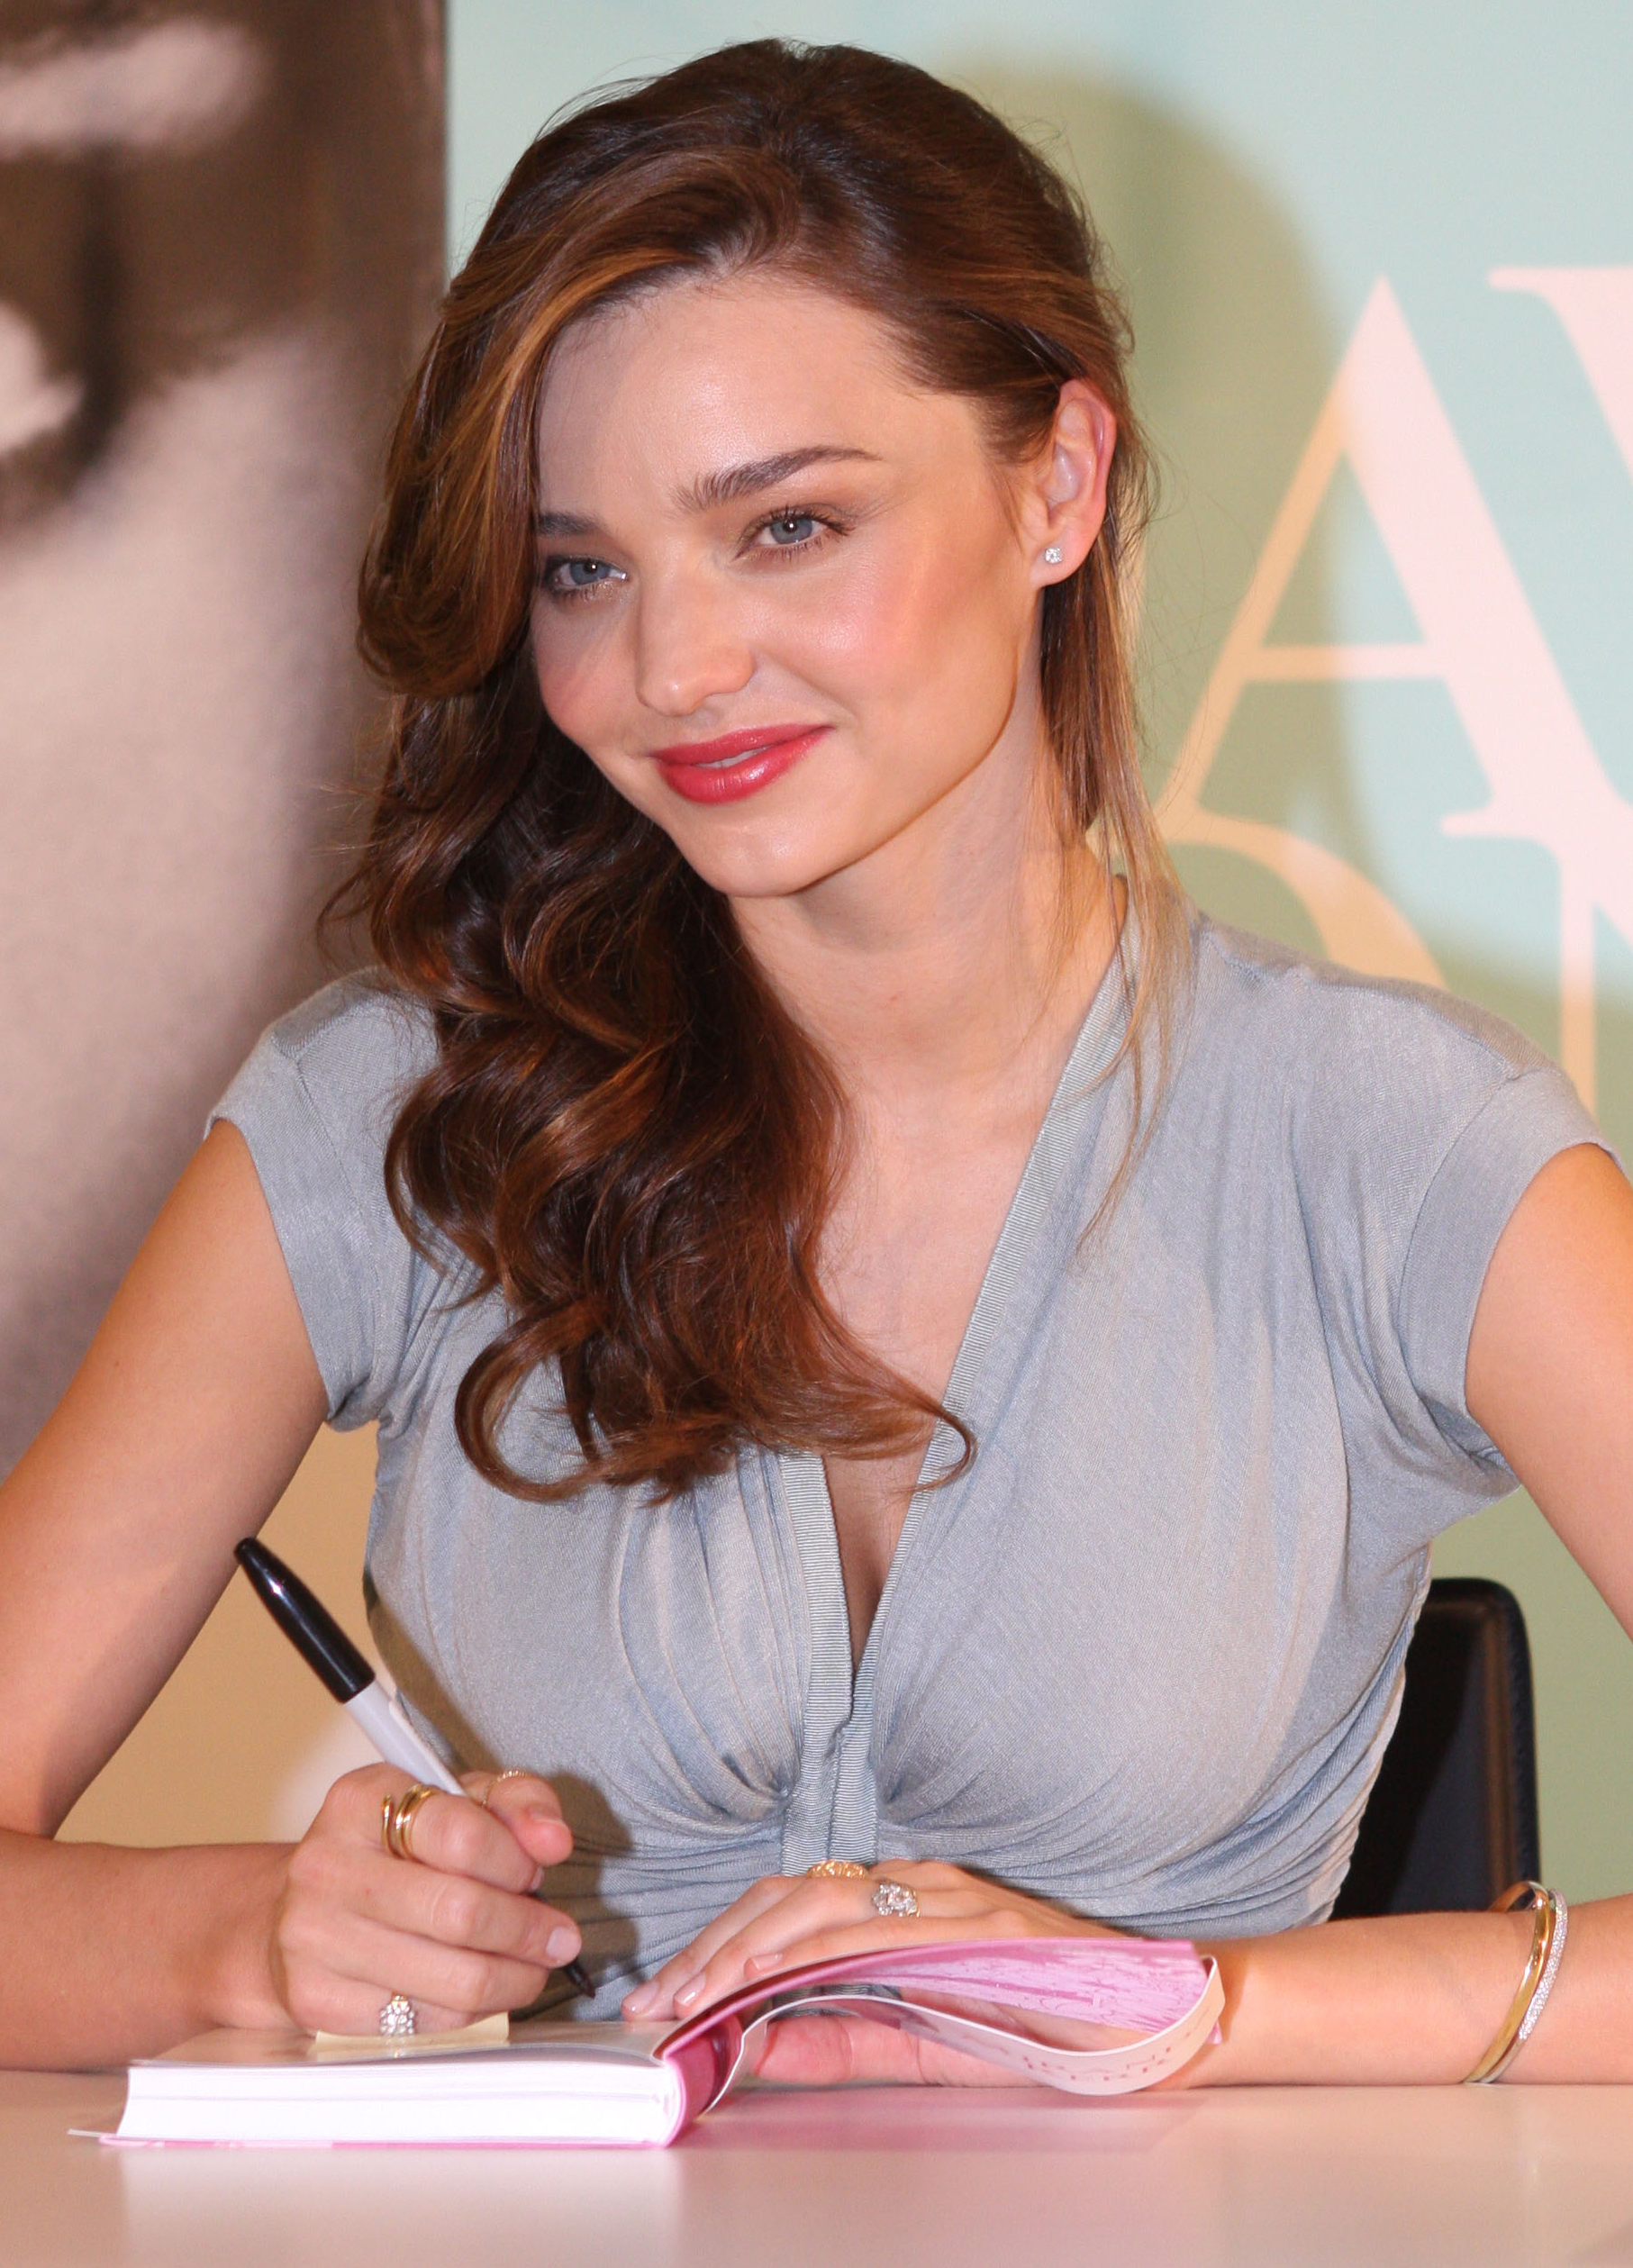 Miranda Kerr at a book signing.